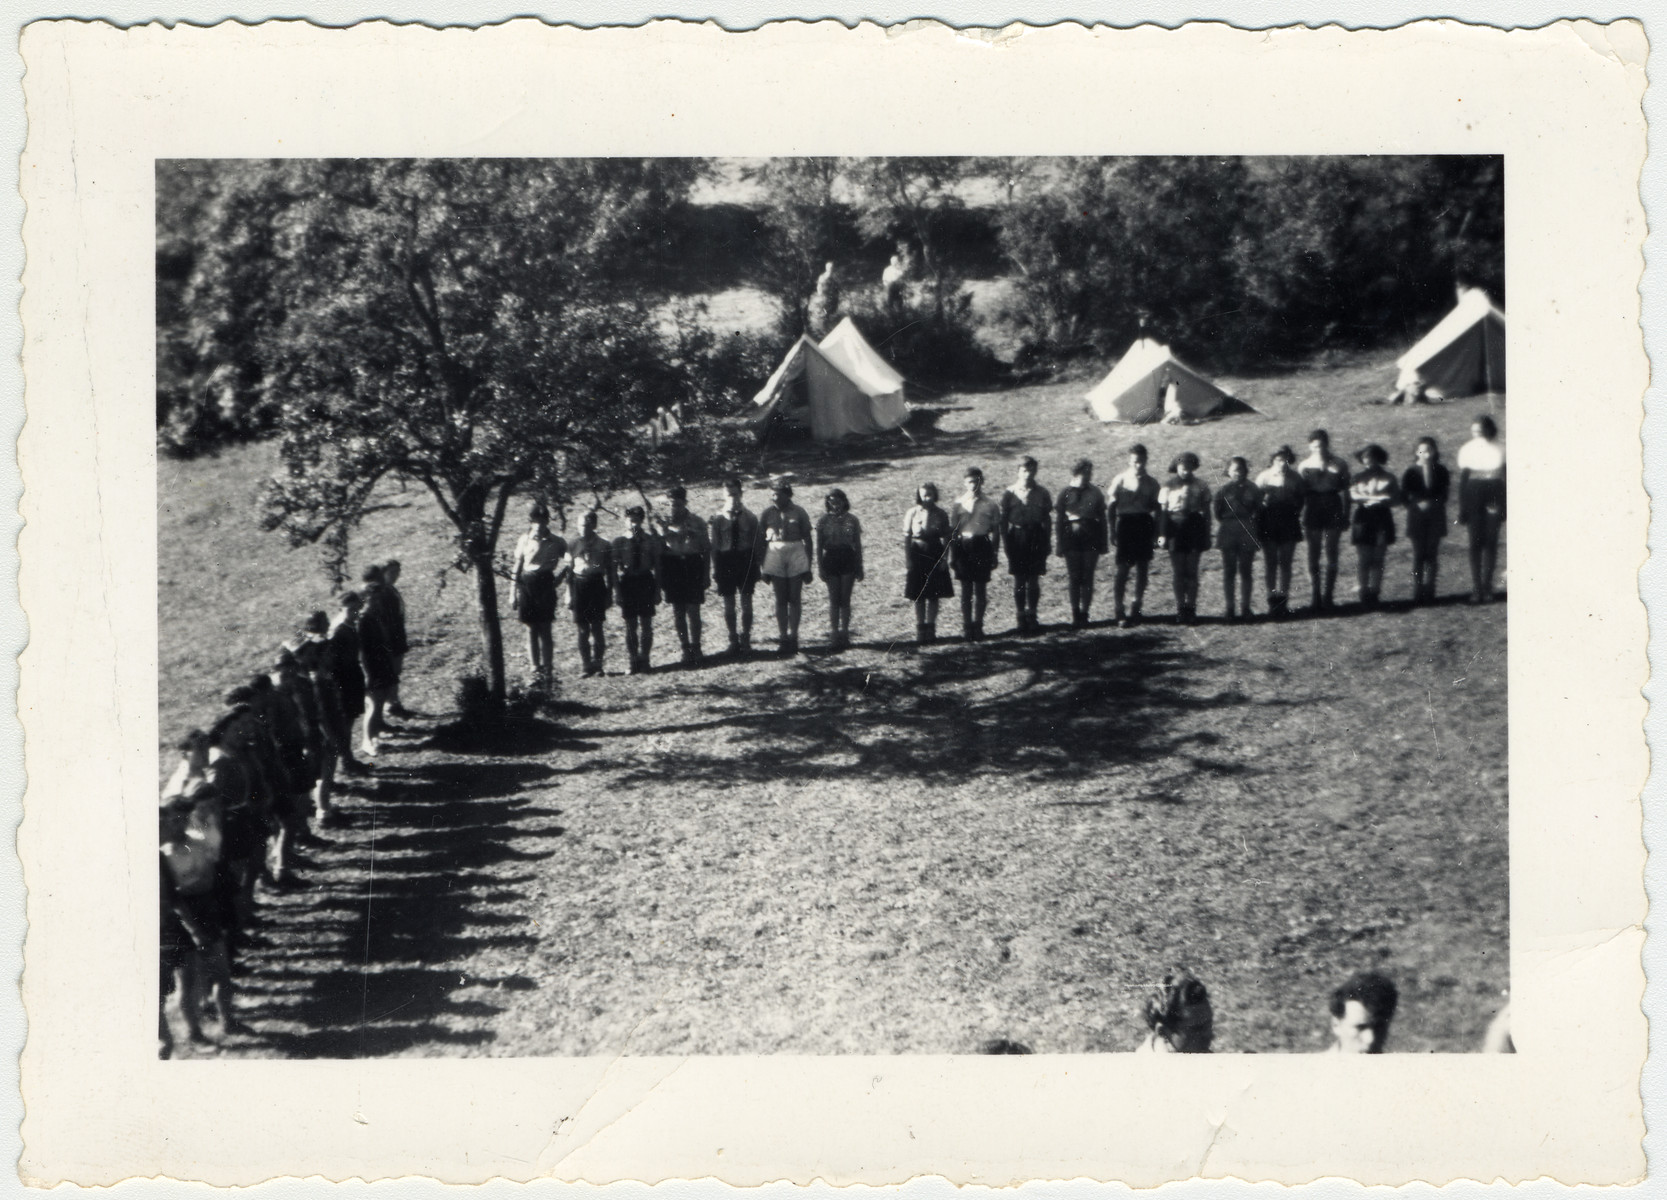 Zionist youth in Switzerland stand for morning roll call at a summer camp.